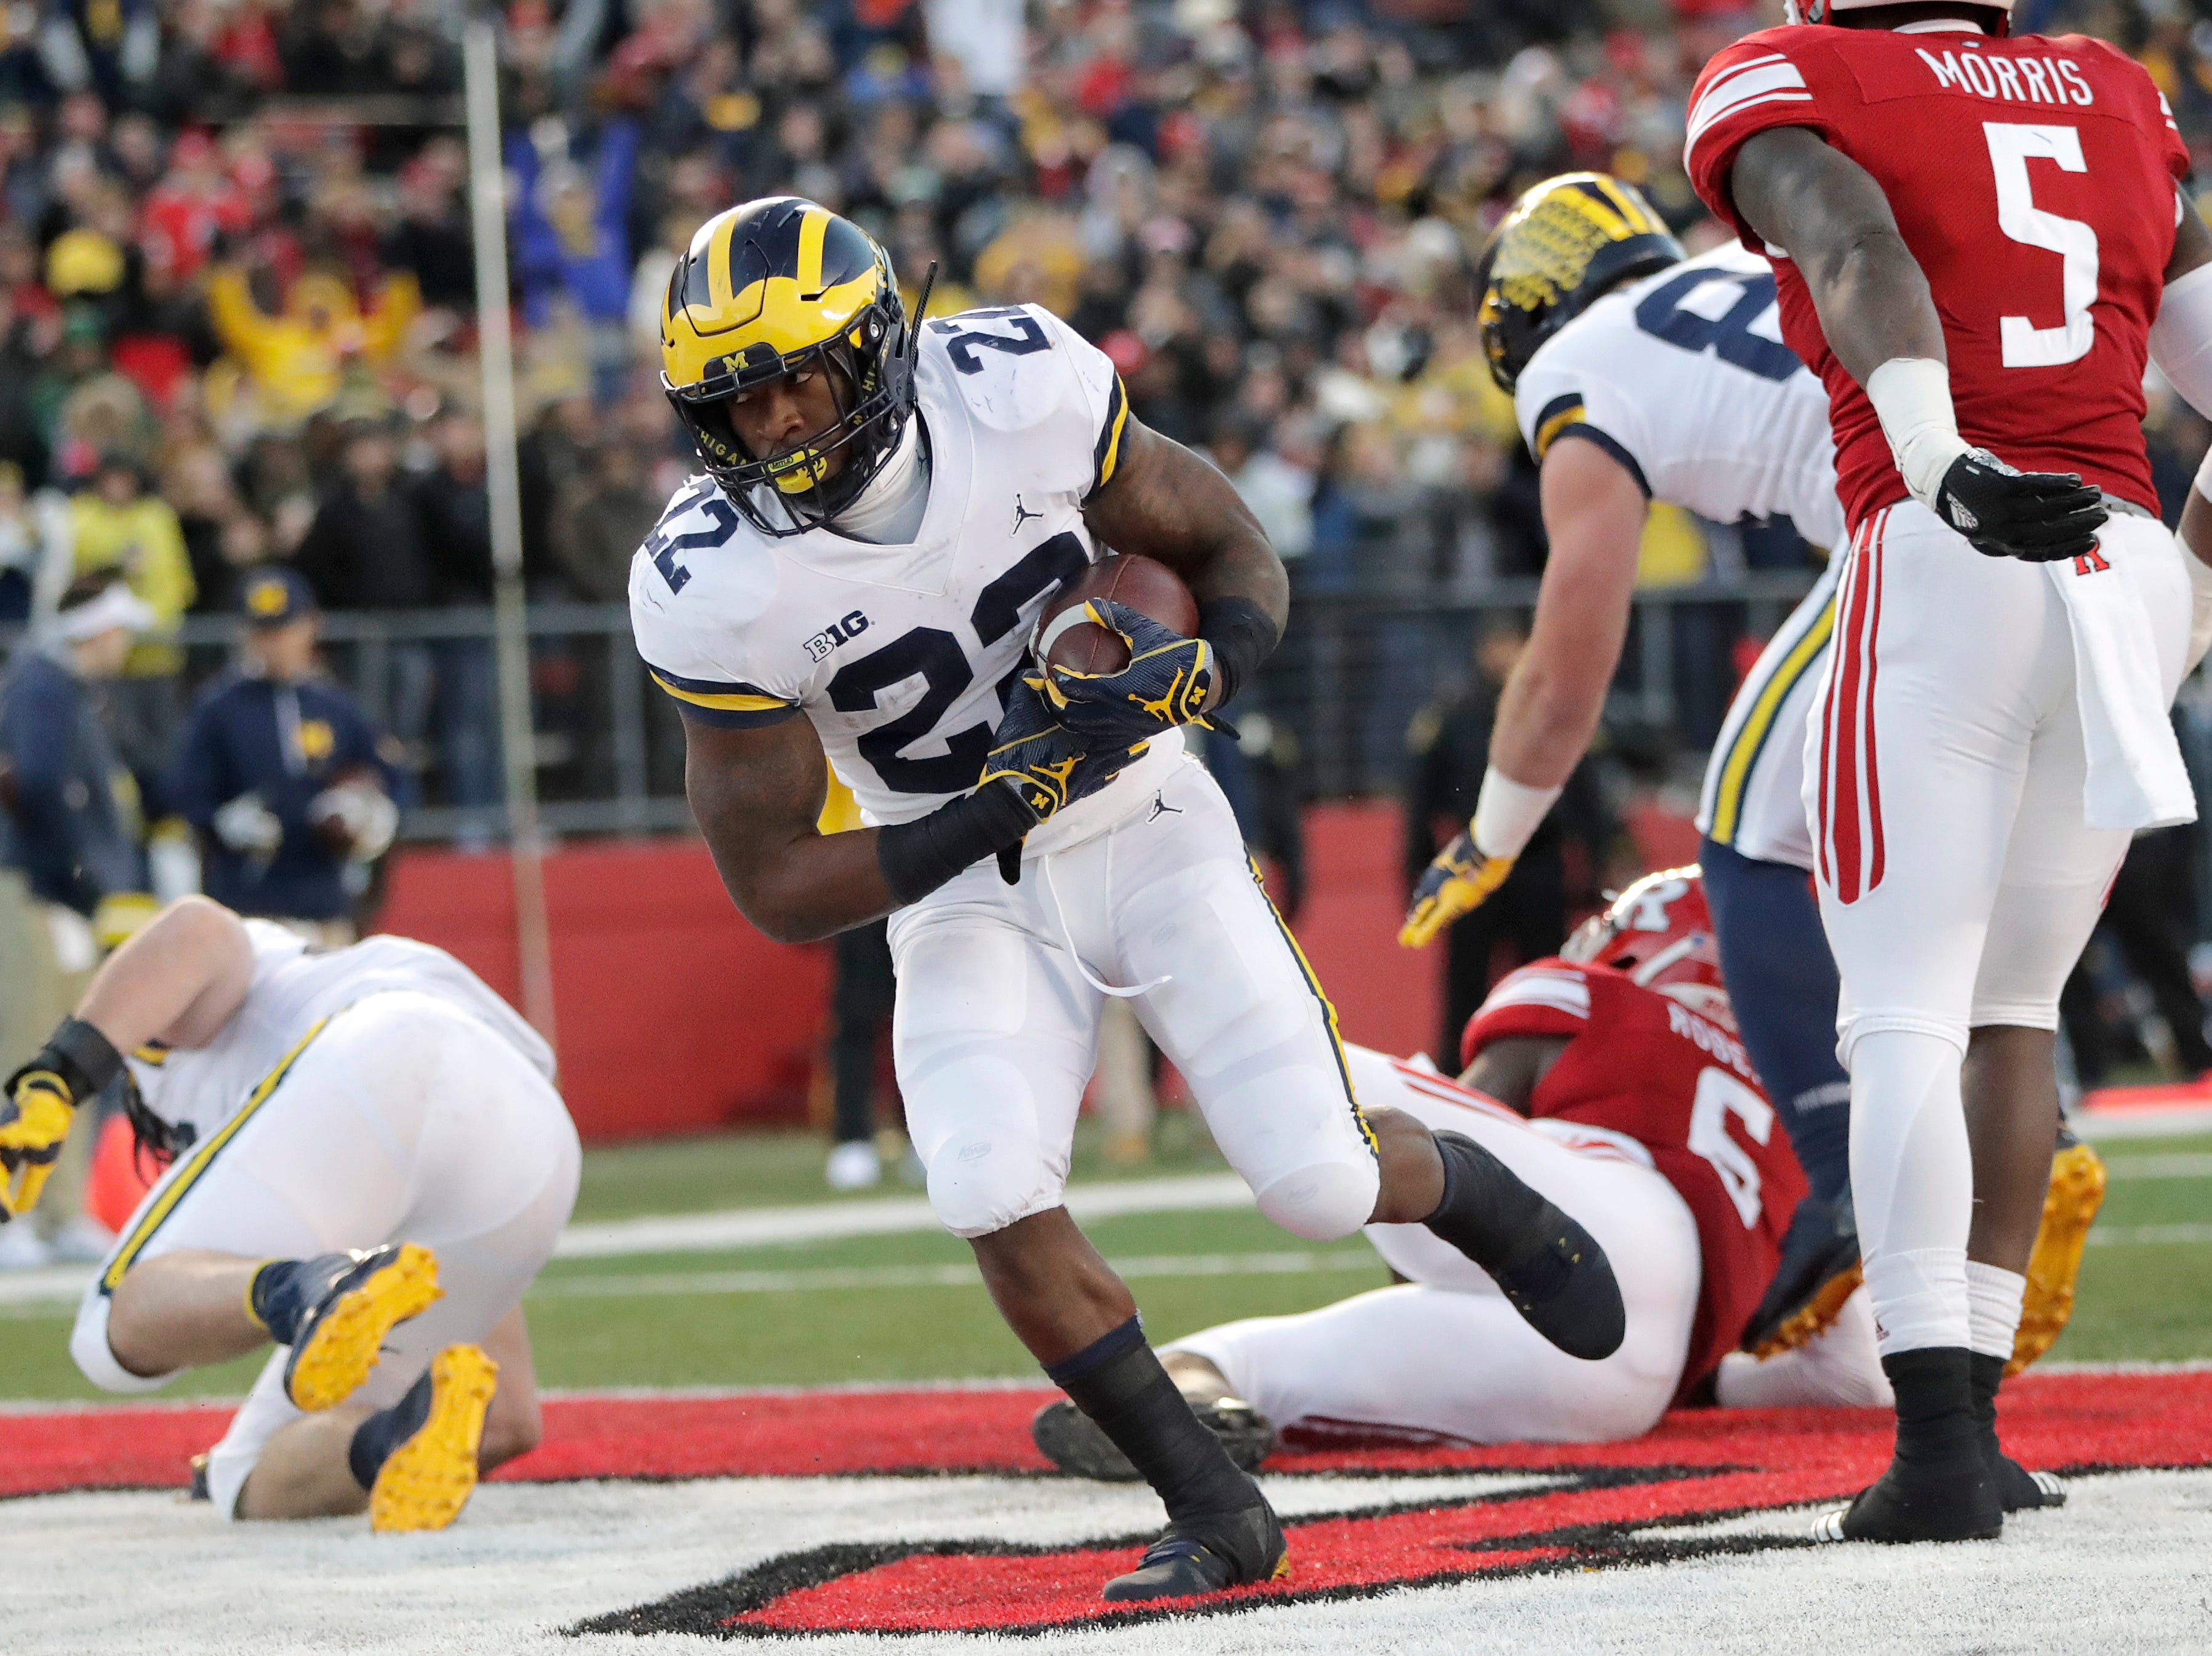 Michigan running back Karan Higdon  scores on a touchdown run against Rutgers.